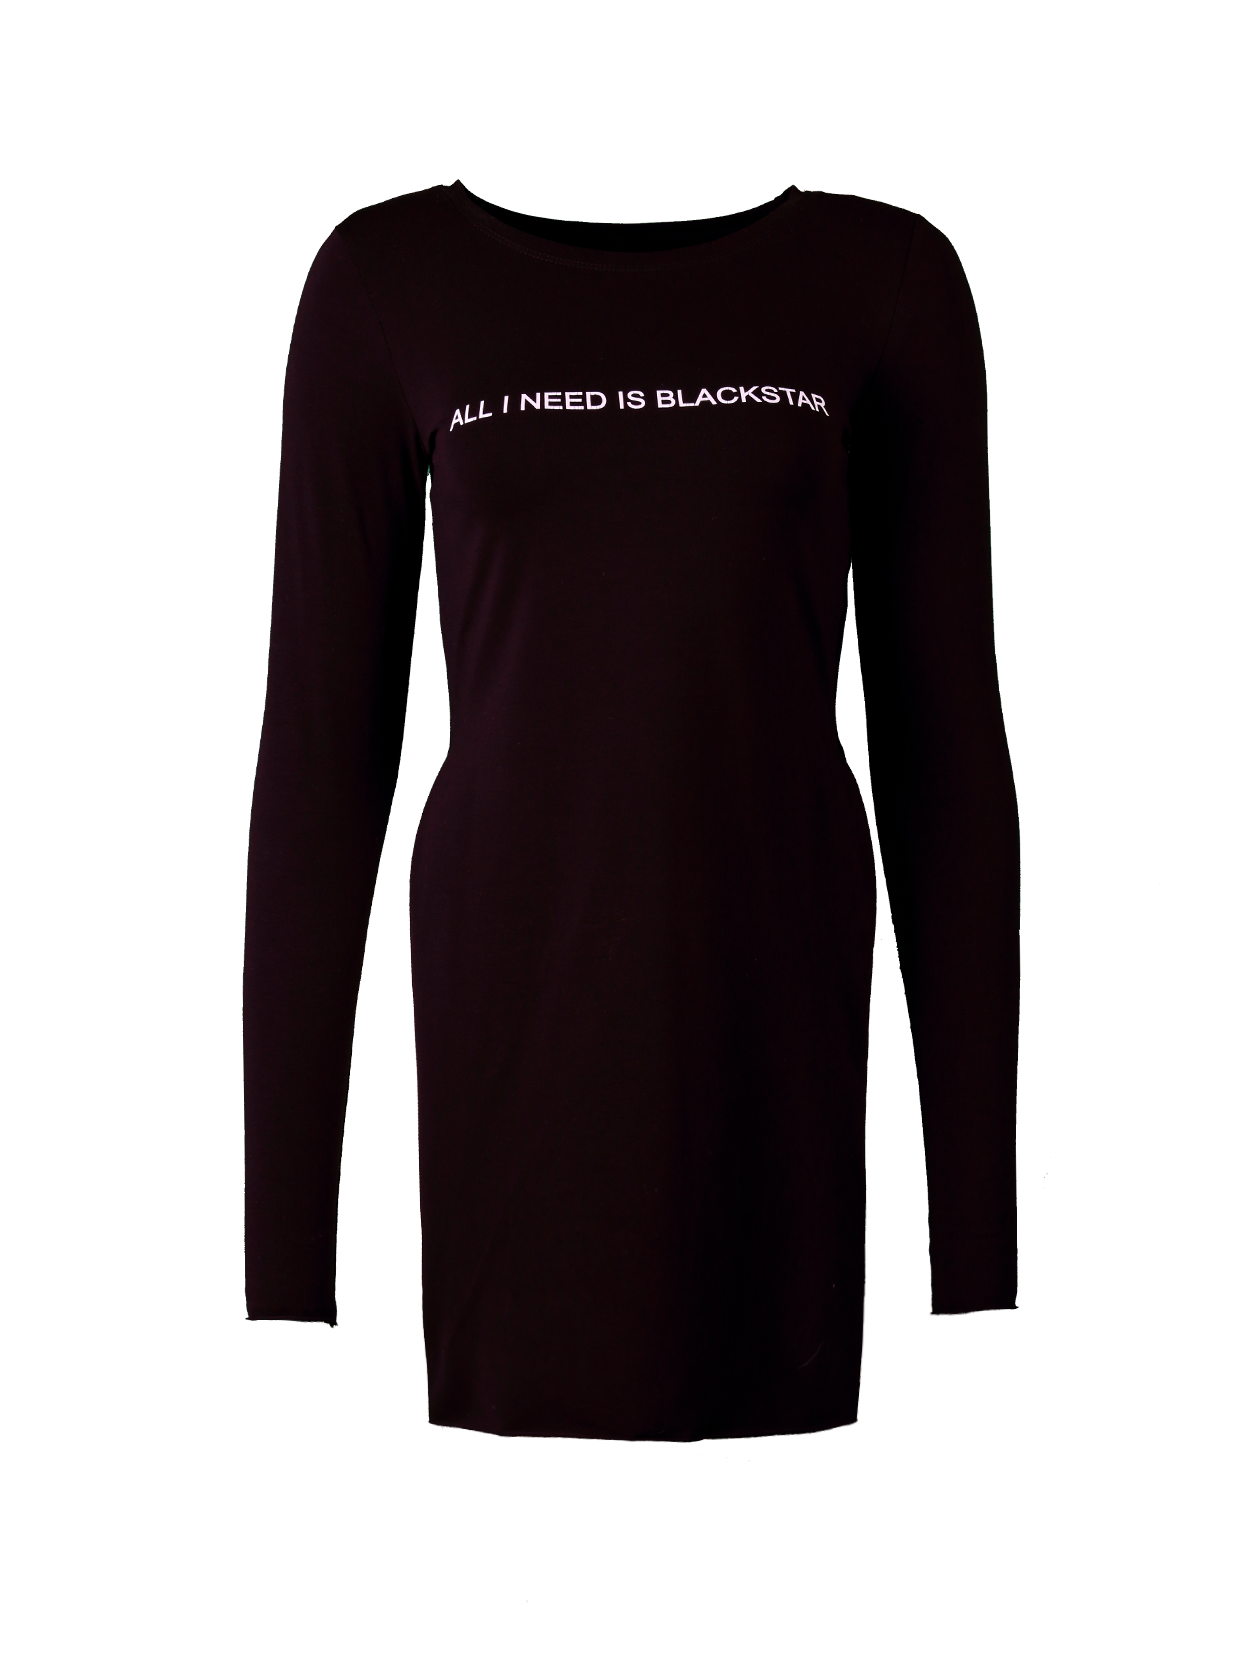 Womens tunic All I Need Is BS13Womens tunic by Black Star Wear. Knee length, long sleeves, o-neck, raw cuts. All I need is a Blackstar print on the chest and 13 on the back. Natural cotton and elastan blend.&amp;nbsp;<br><br>size: L<br>color: Black<br>gender: female